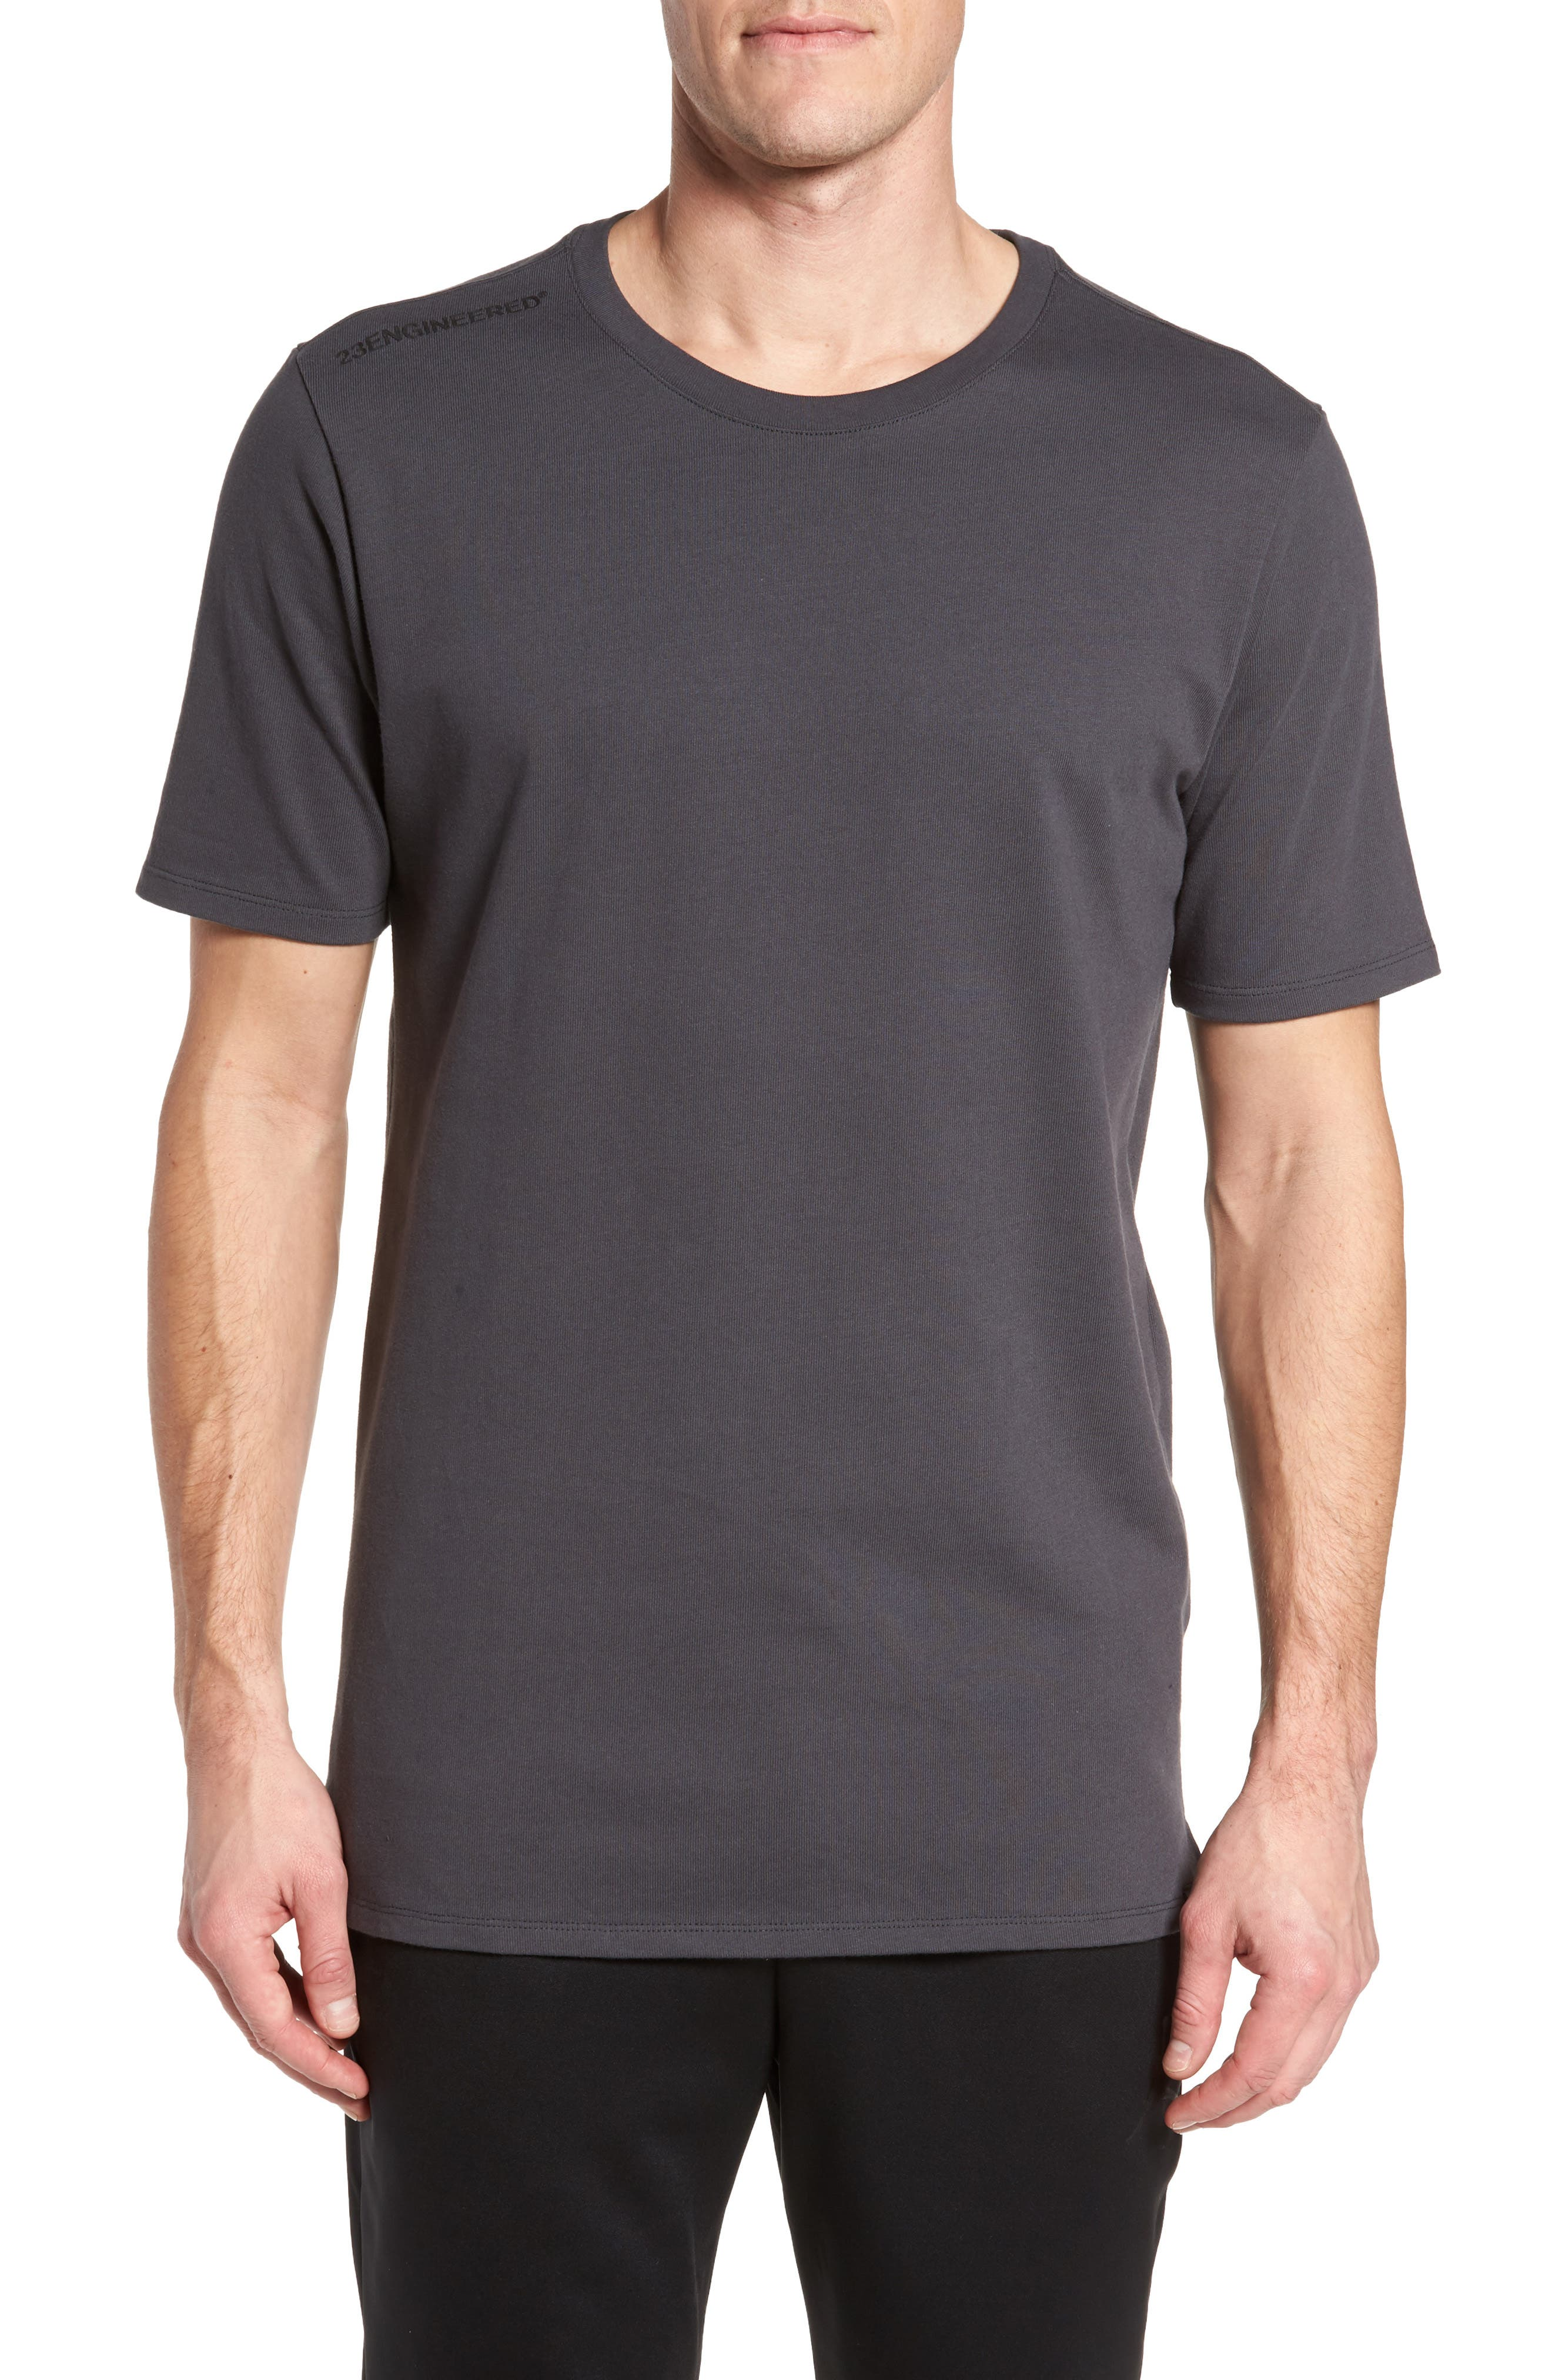 Sportswear 23 Engineered T-Shirt,                             Main thumbnail 1, color,                             Anthracite/ Black